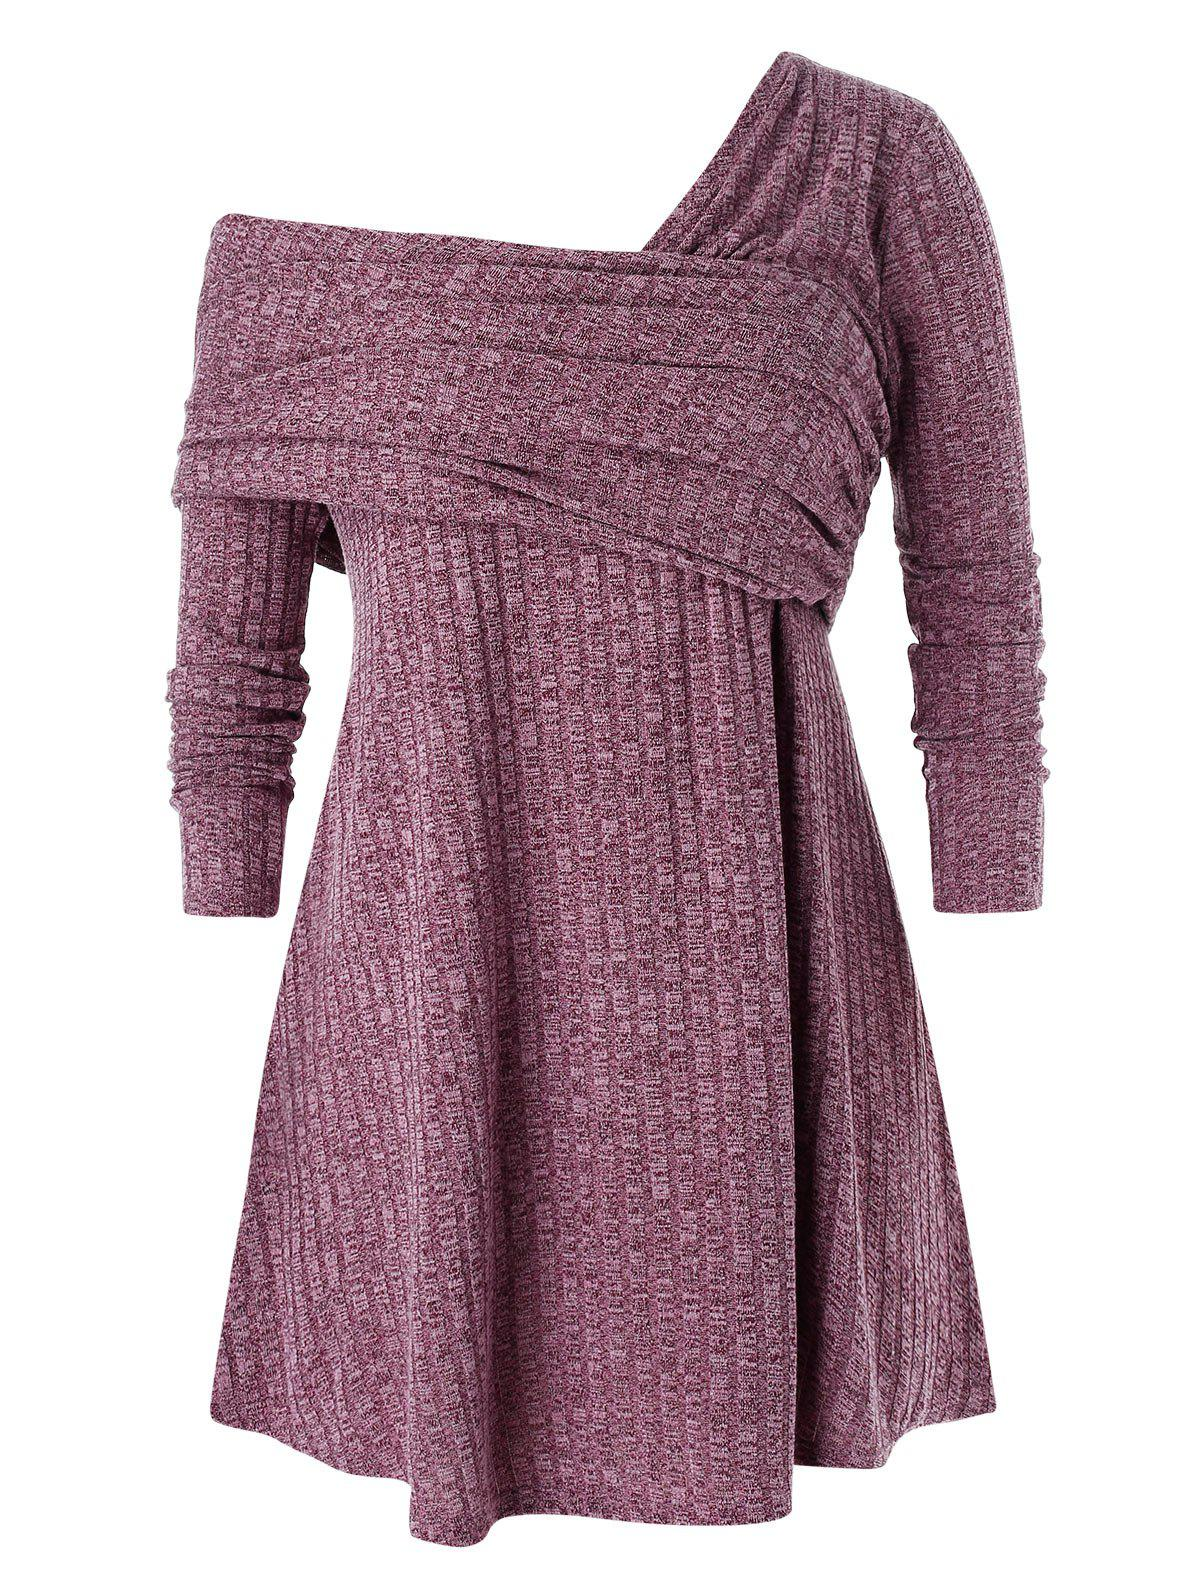 Plus Size Skew Neck Crossover Marled Knitwear - RED WINE 4X